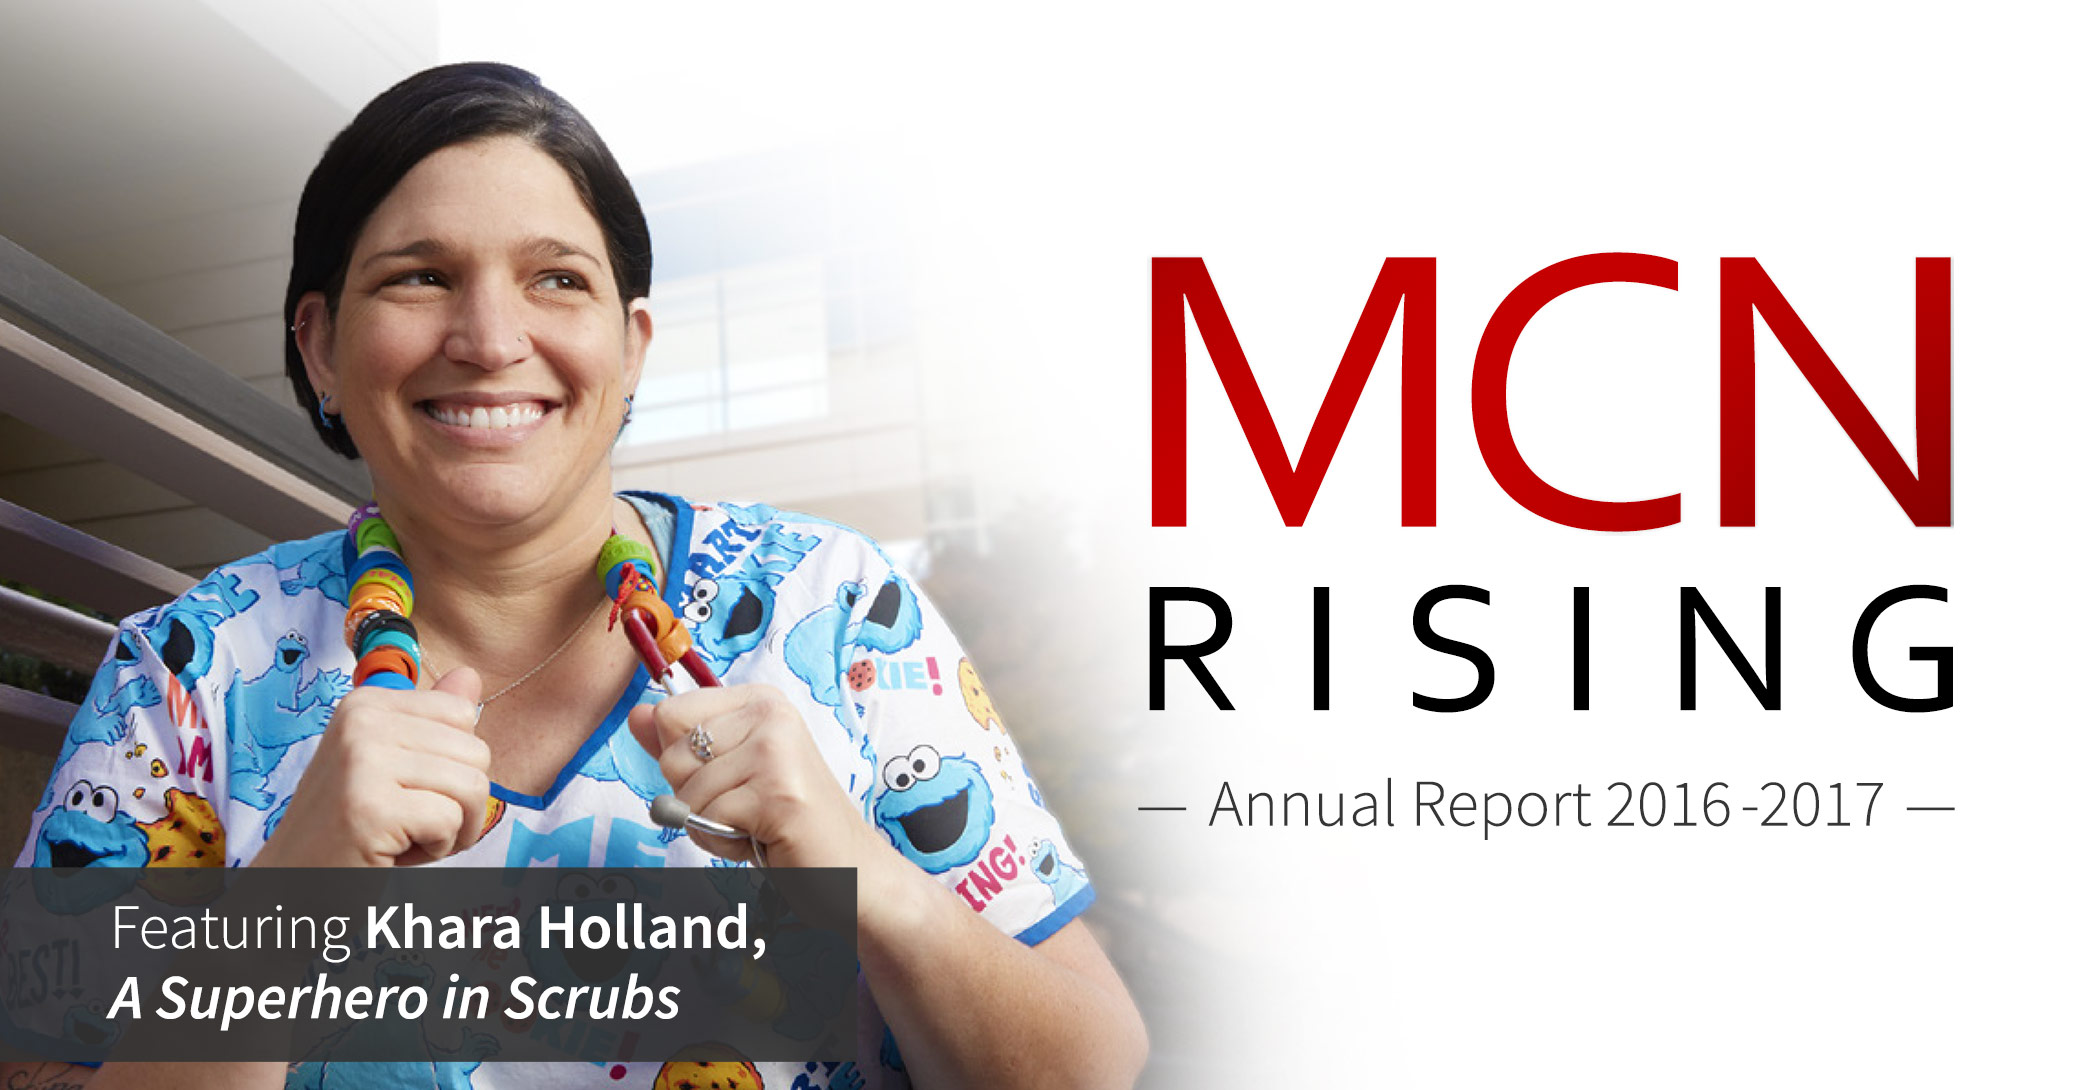 MCN 2016-2017 Annual Report, featuring Khara Holland.